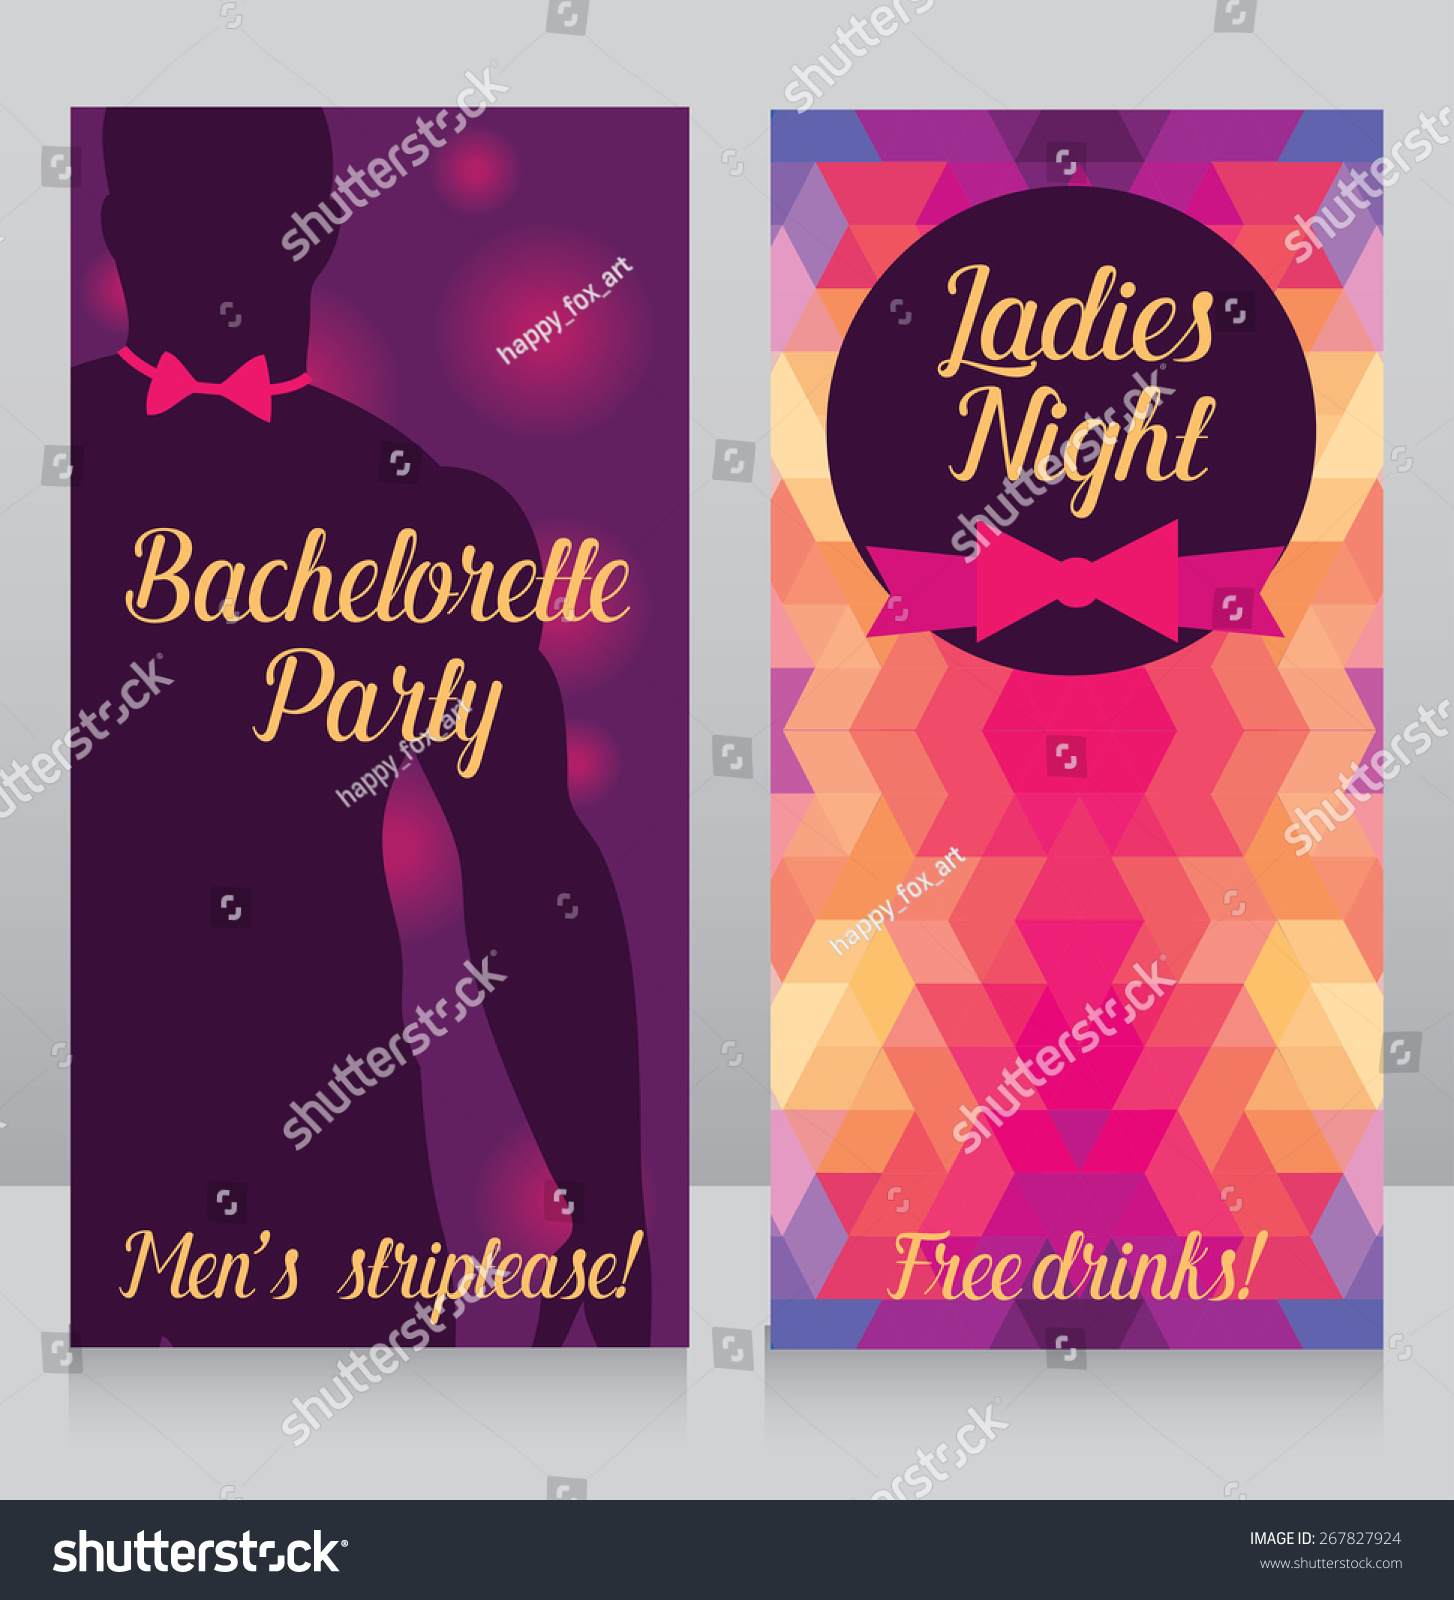 Stag Party Invite Image collections - Party Invitations Ideas